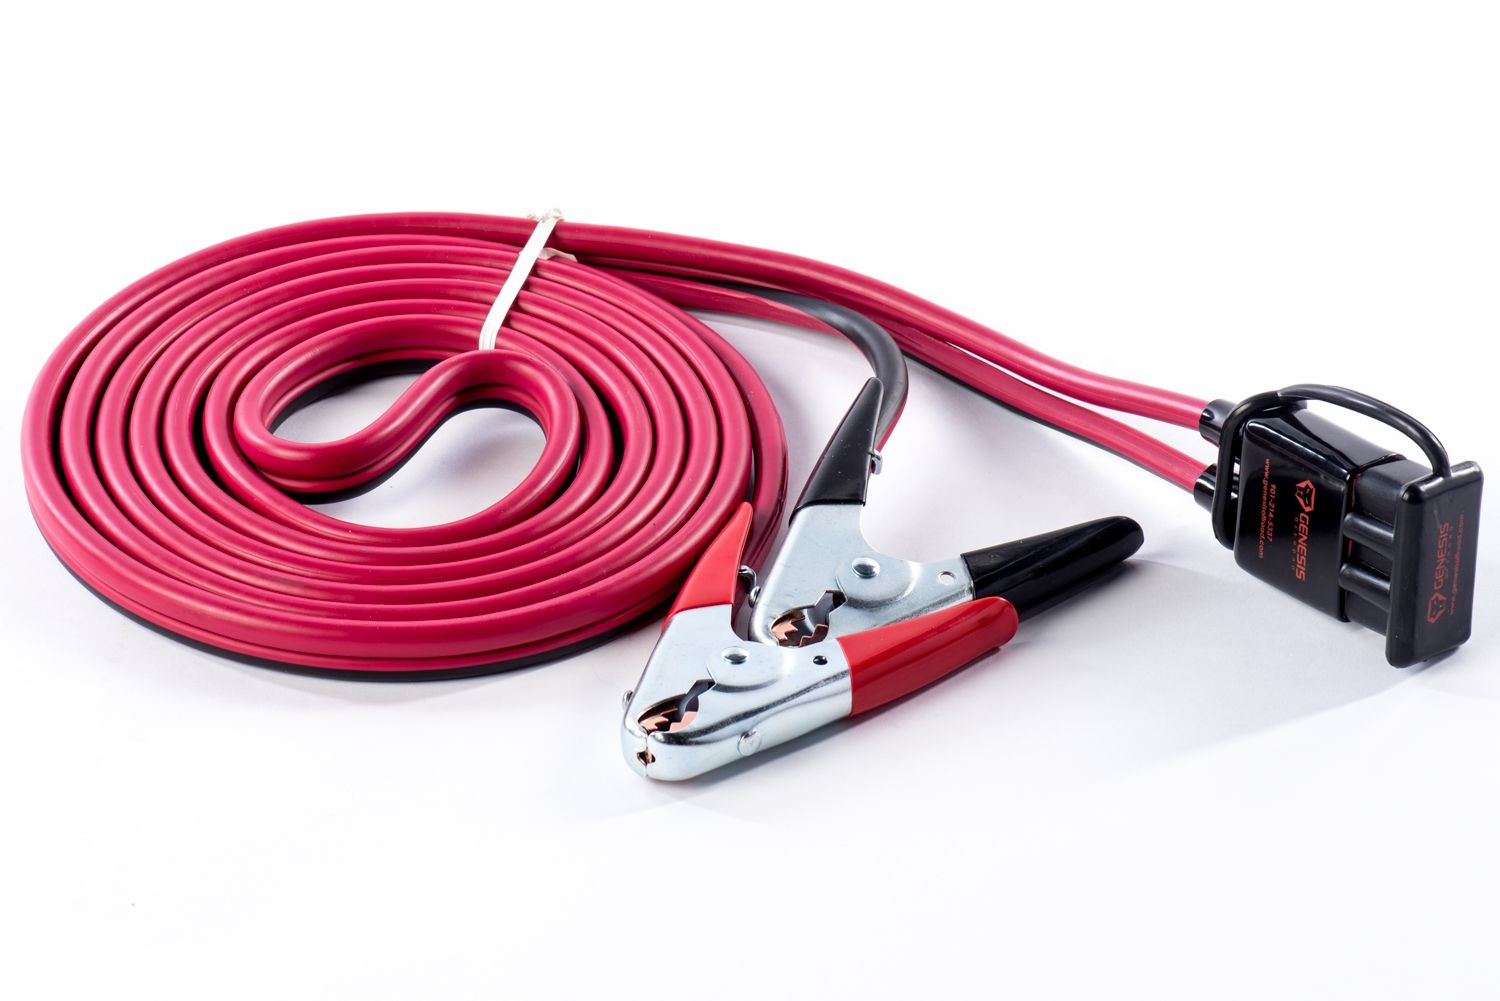 We Manufacture The Best Dual Battery Kits For The Jeep Wrangler Jk As Well As A Universal Dual Battery Kit For Other Vehic With Images Jumper Cables Jeep Truck Accessories